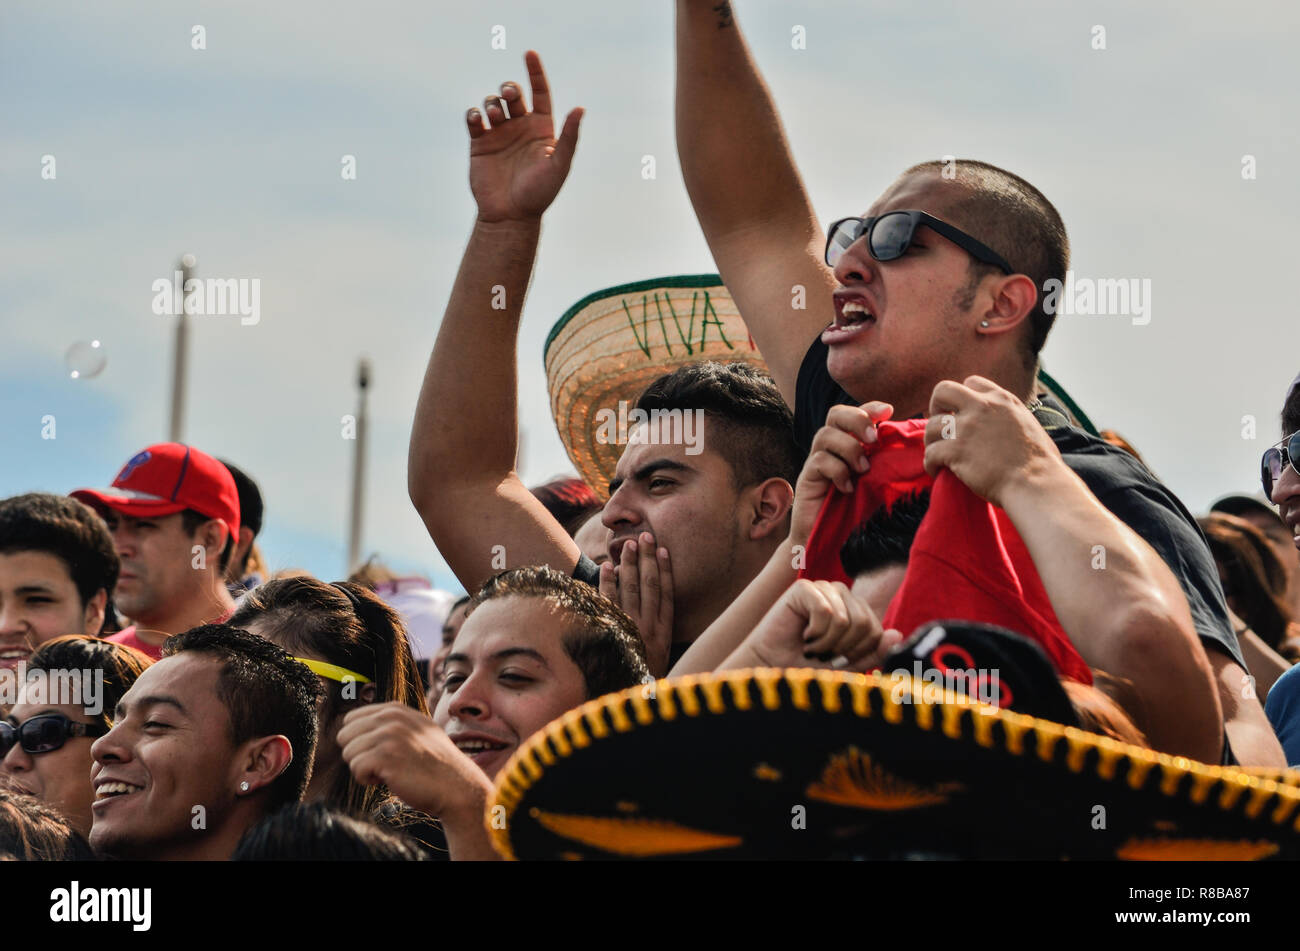 Philadelphia Pennsylvania - September 15,2013: Group of Mexican men enjoying the festivities at the Mexican Independence Day celebration at Penns Land Stock Photo